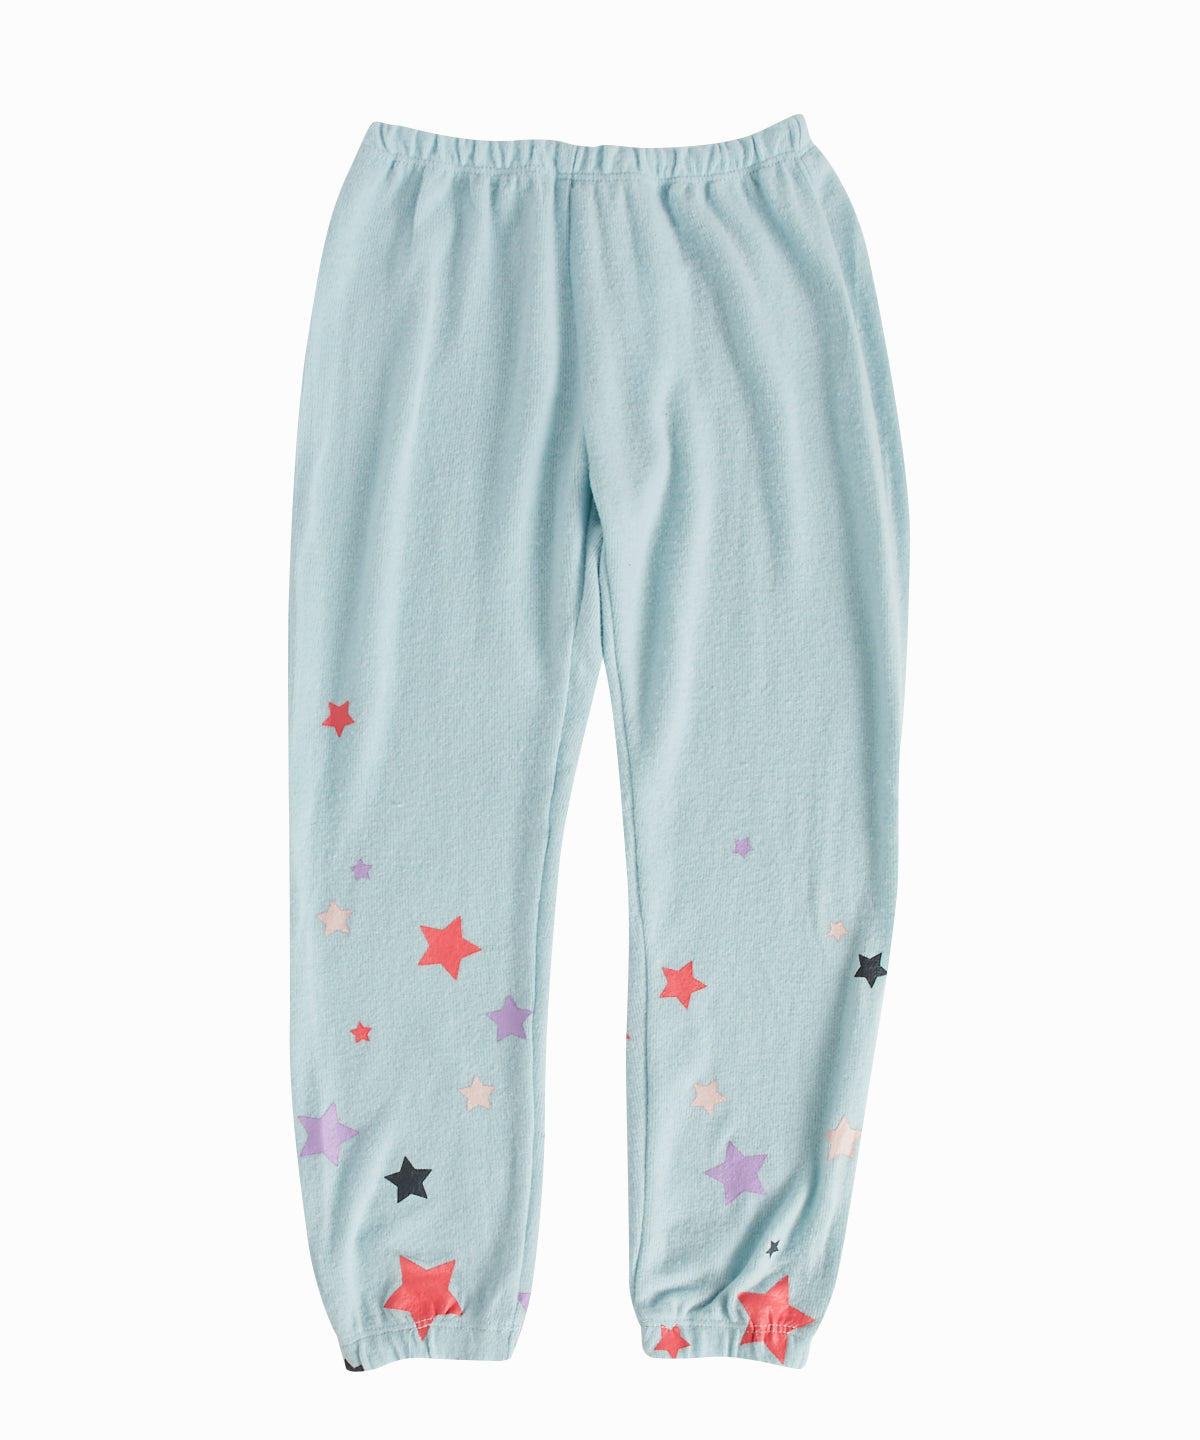 Starry Sweatpants